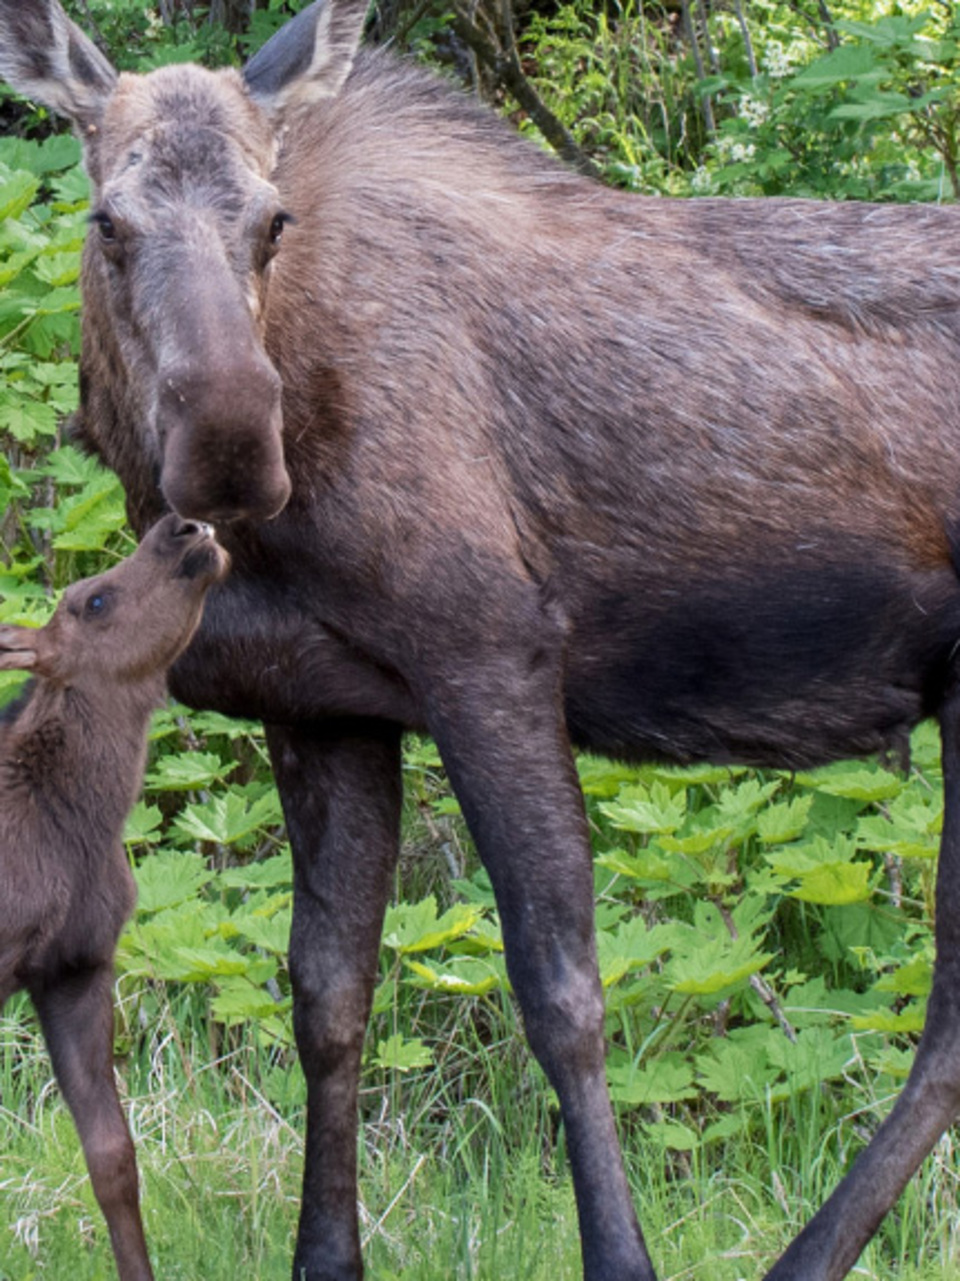 Someone poached a moose in central Idaho and left it to waste | KBOI